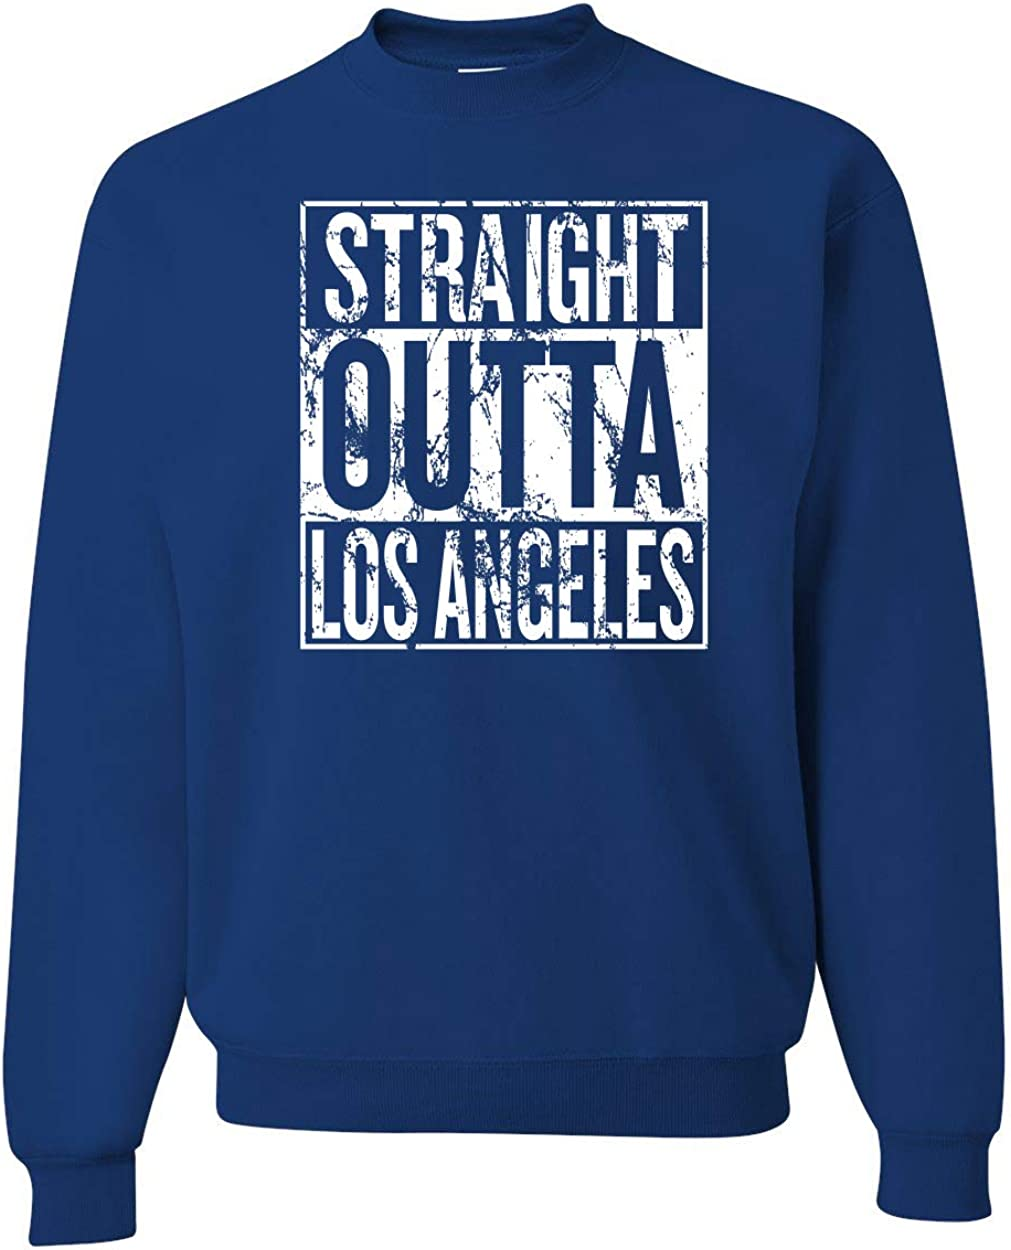 Mens Sports Crewneck Graphic Sweatshirt Wild Bobby Los Angeles Fans LAR Fantasy Football